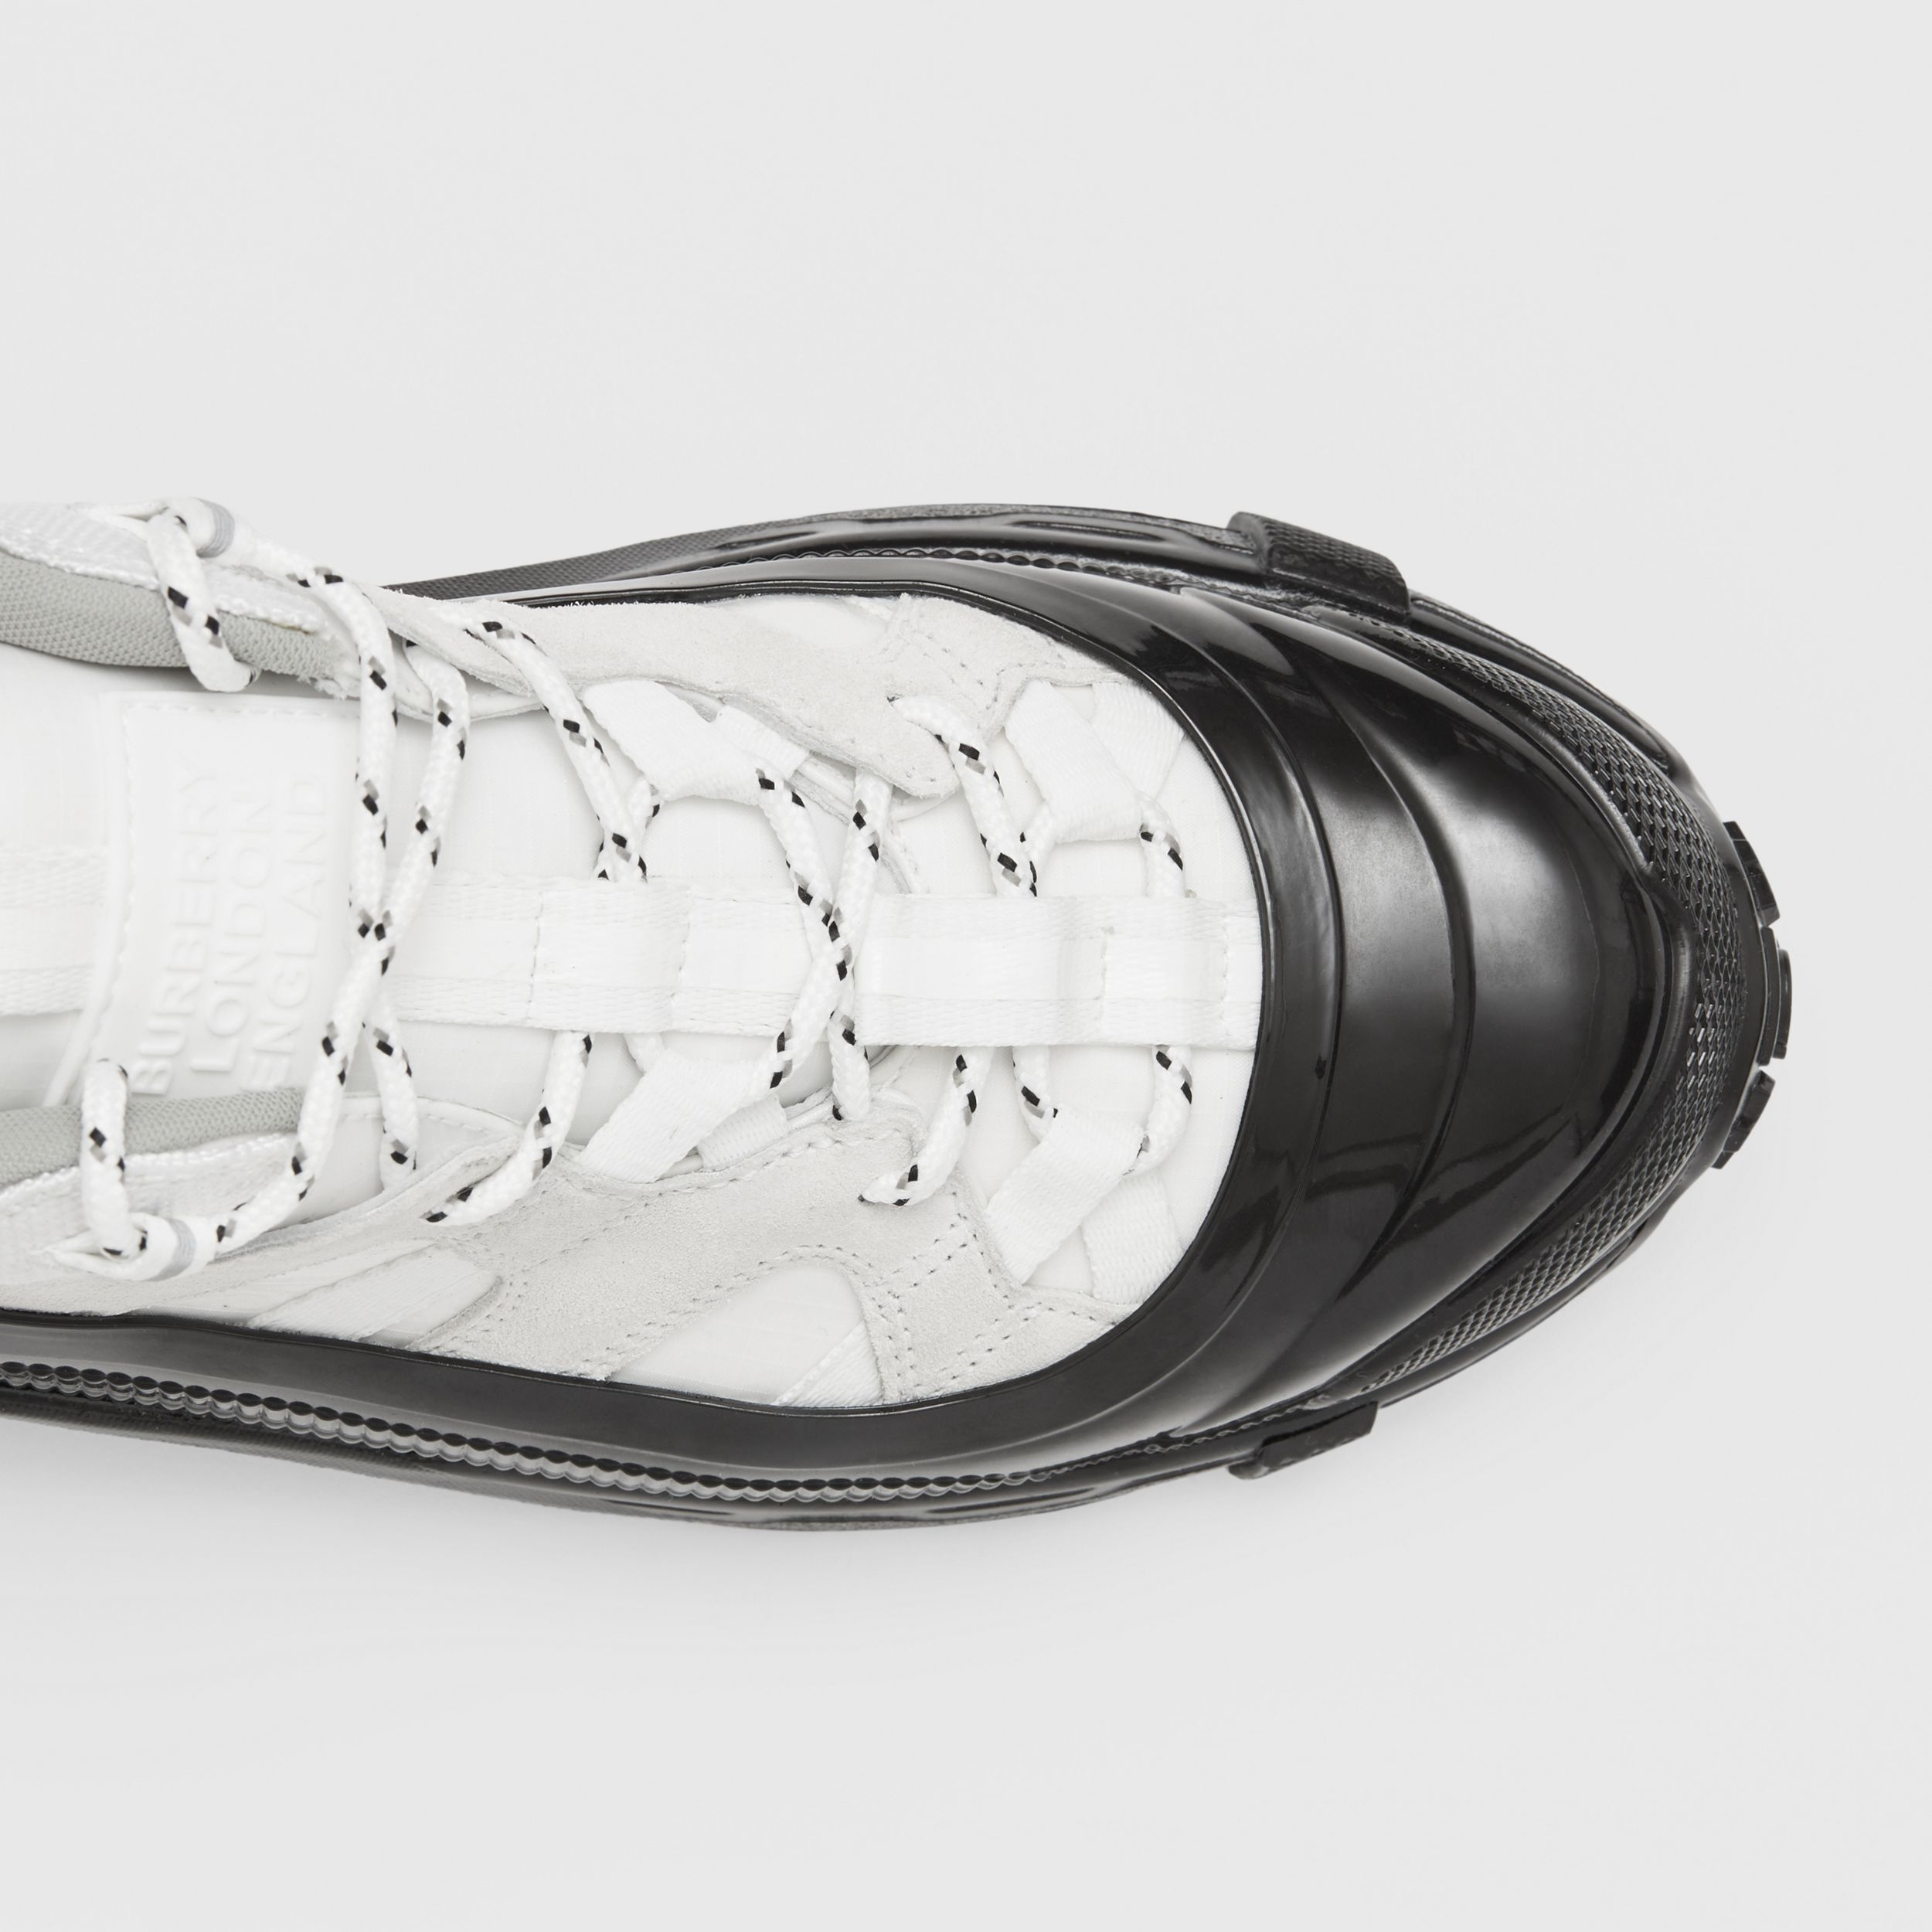 Nylon and Suede Arthur Sneakers in White - Women | Burberry Singapore - 2